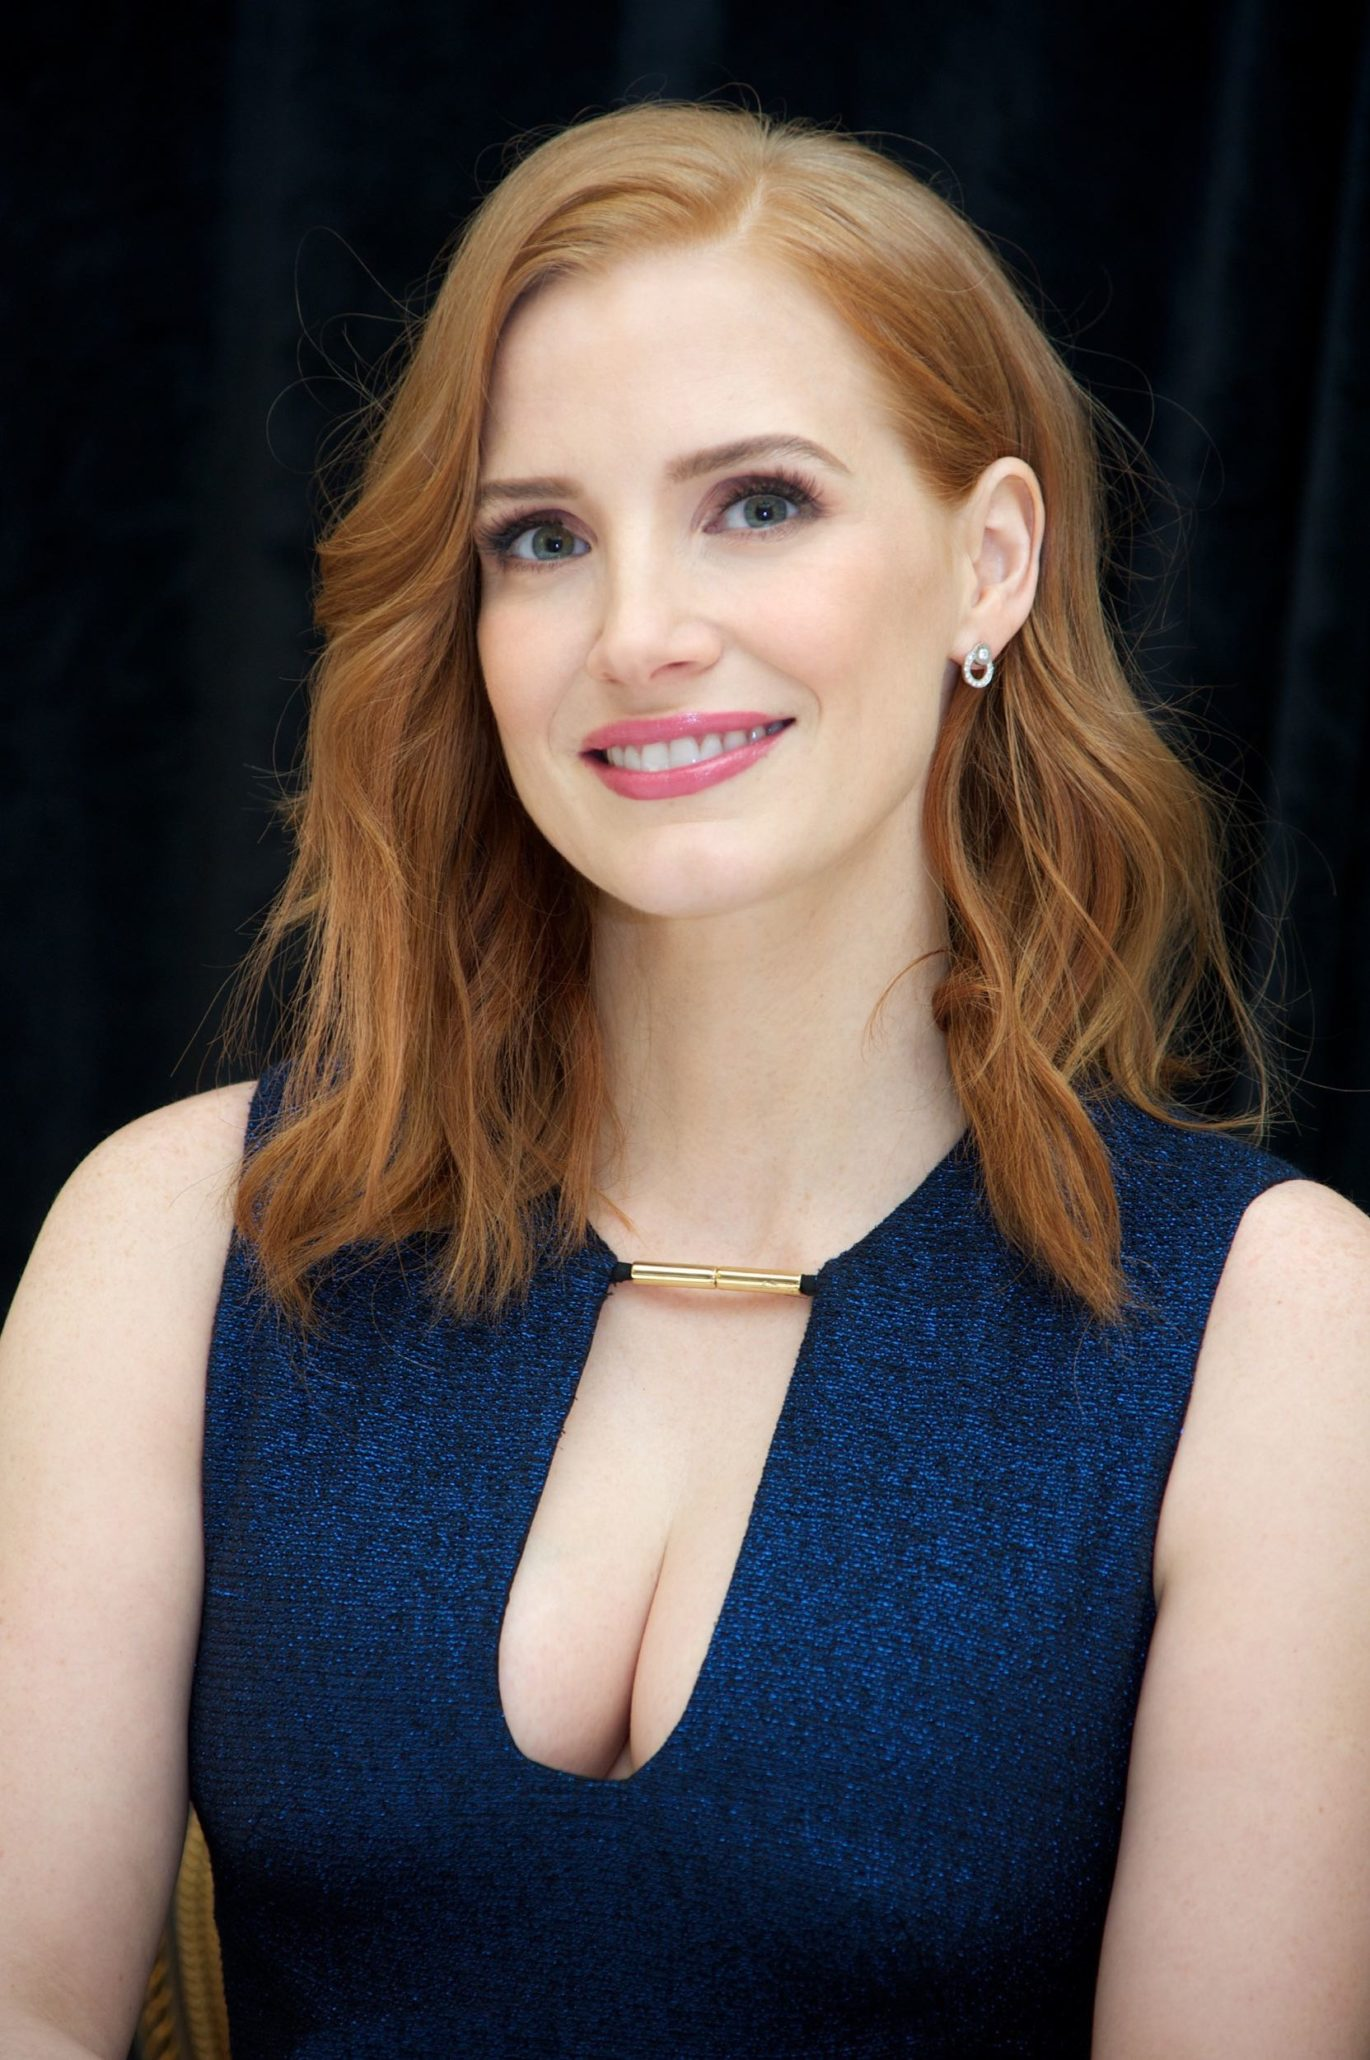 Photos Jessica Chastain nude (34 photos), Topless, Bikini, Selfie, cameltoe 2018